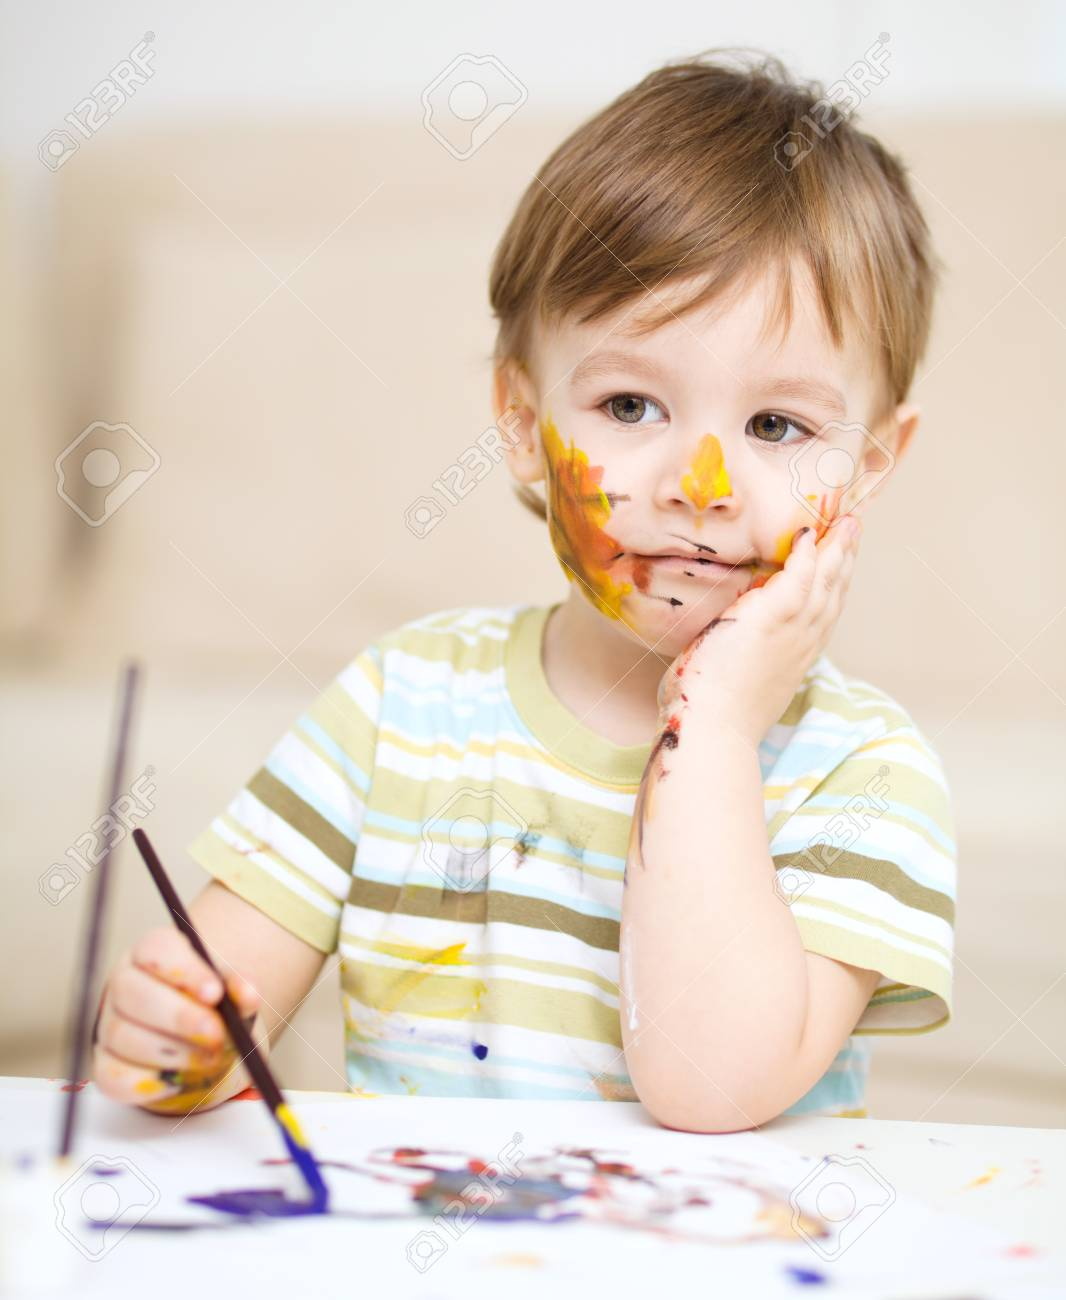 Portrait of a cute little boy messily playing with paints Stock Photo - 17160592